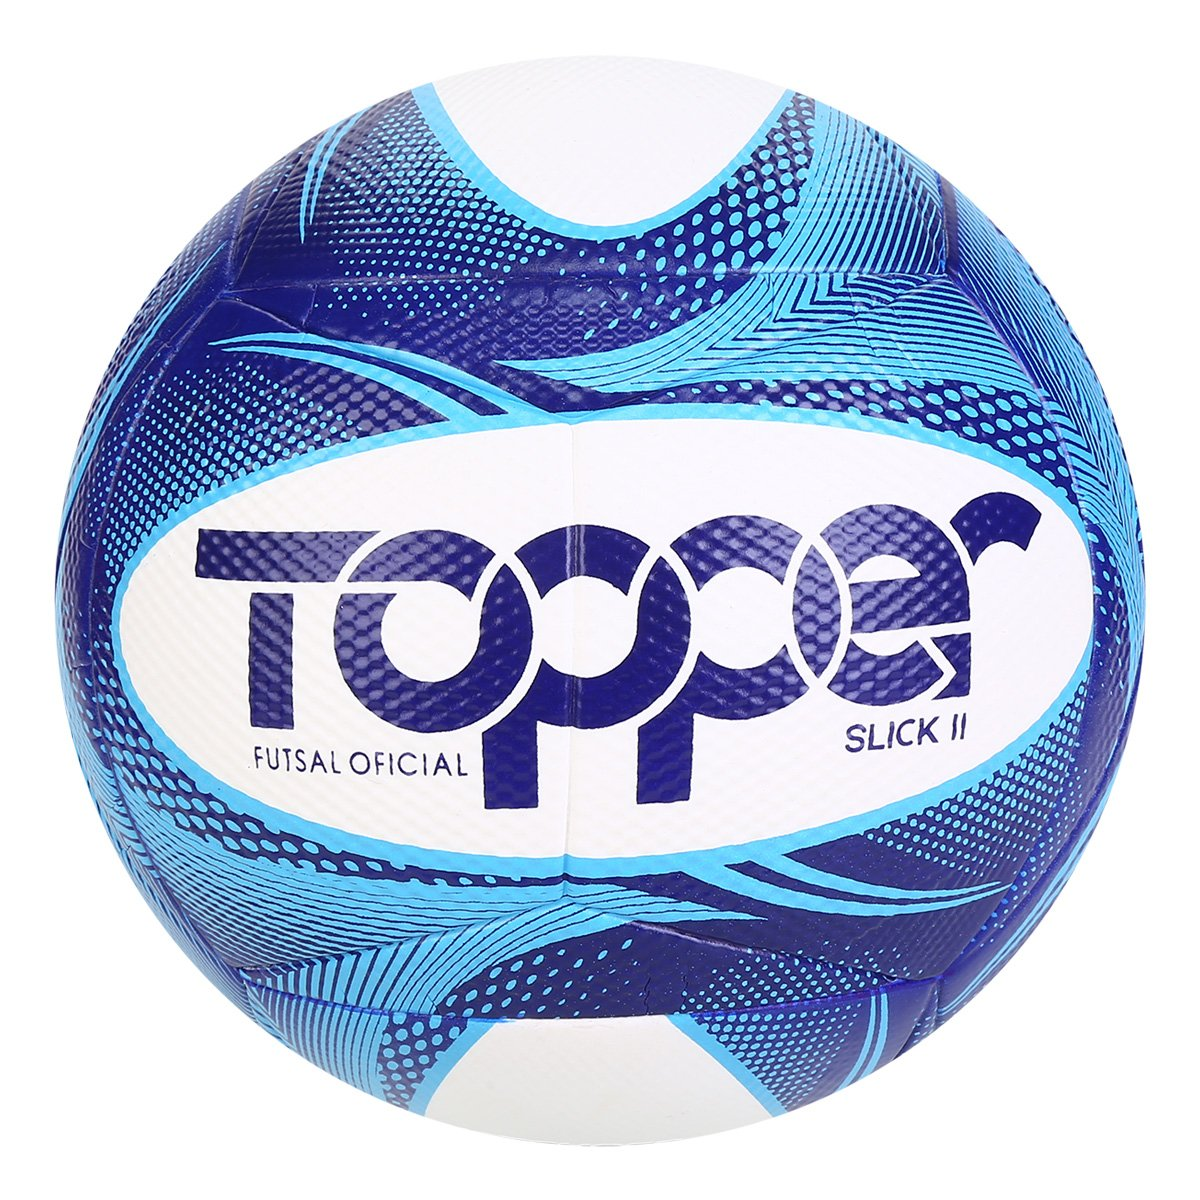 Bola de Futsal Slick II 19 Topper Exclusiva - 0